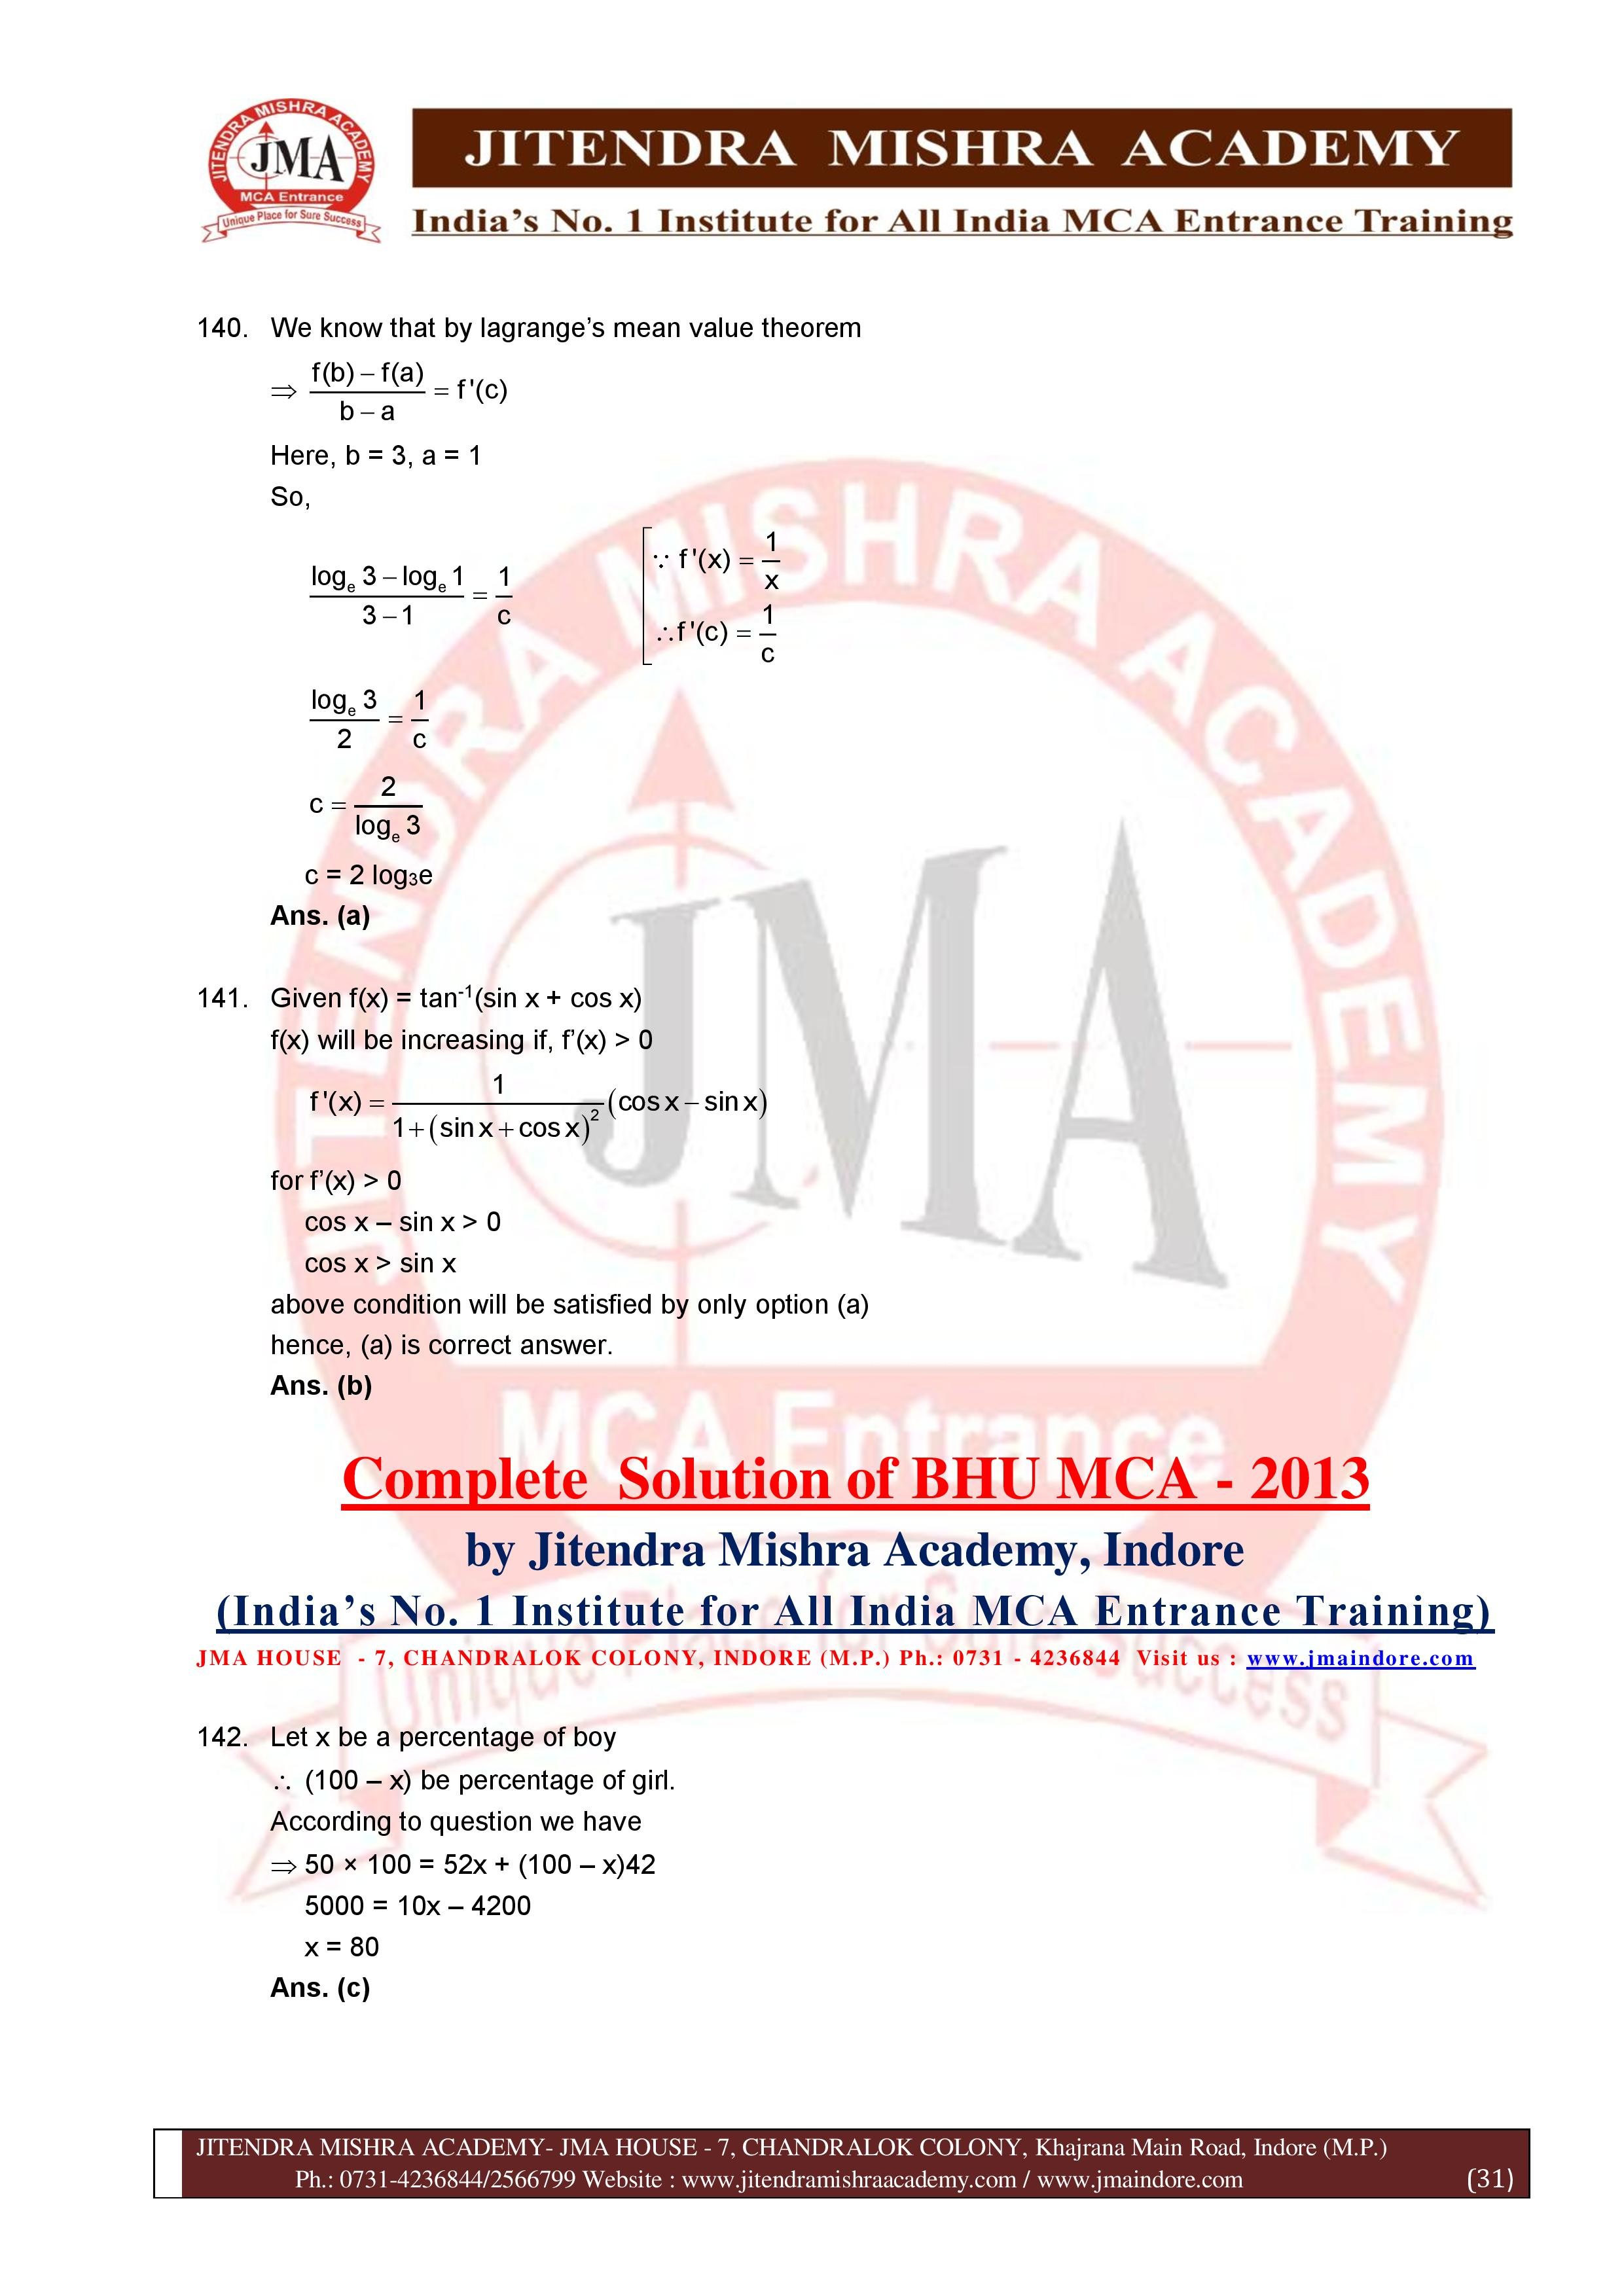 BHU 2013 SOLUTION (SET - 3) (06.07.16)-page-031